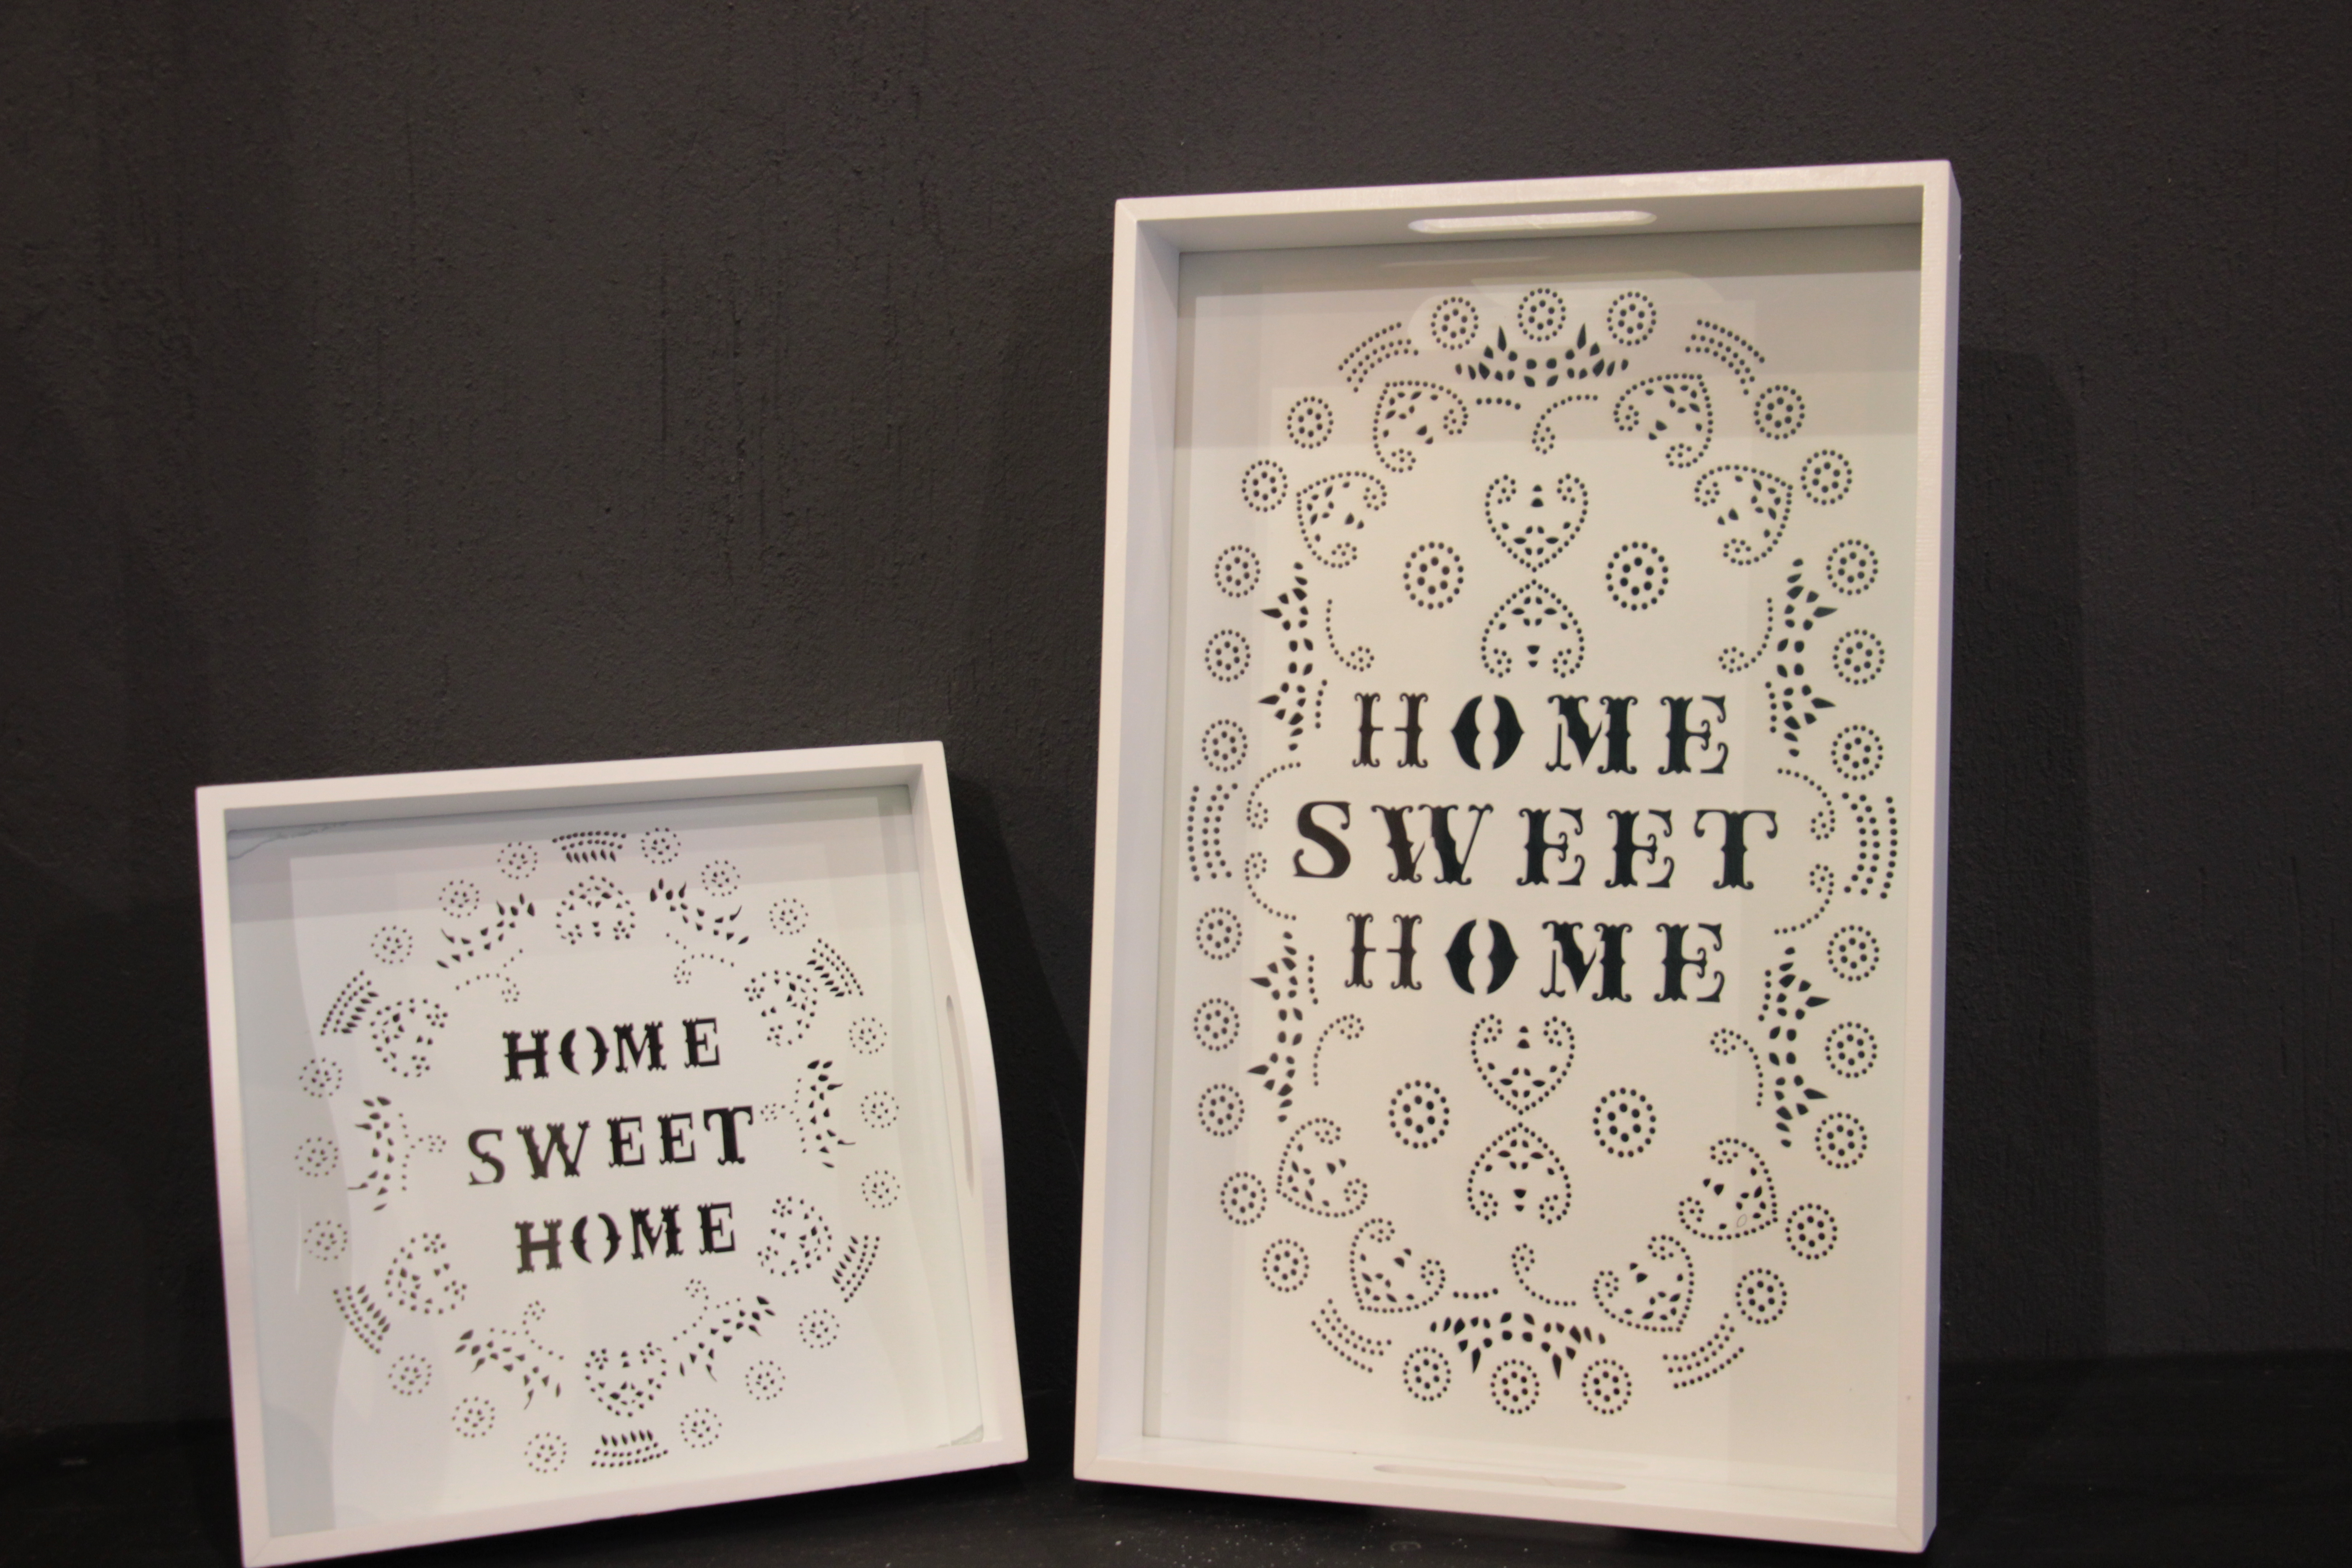 Plateaux home sweet home meubles et d coration tunisie for Meuble sweet home